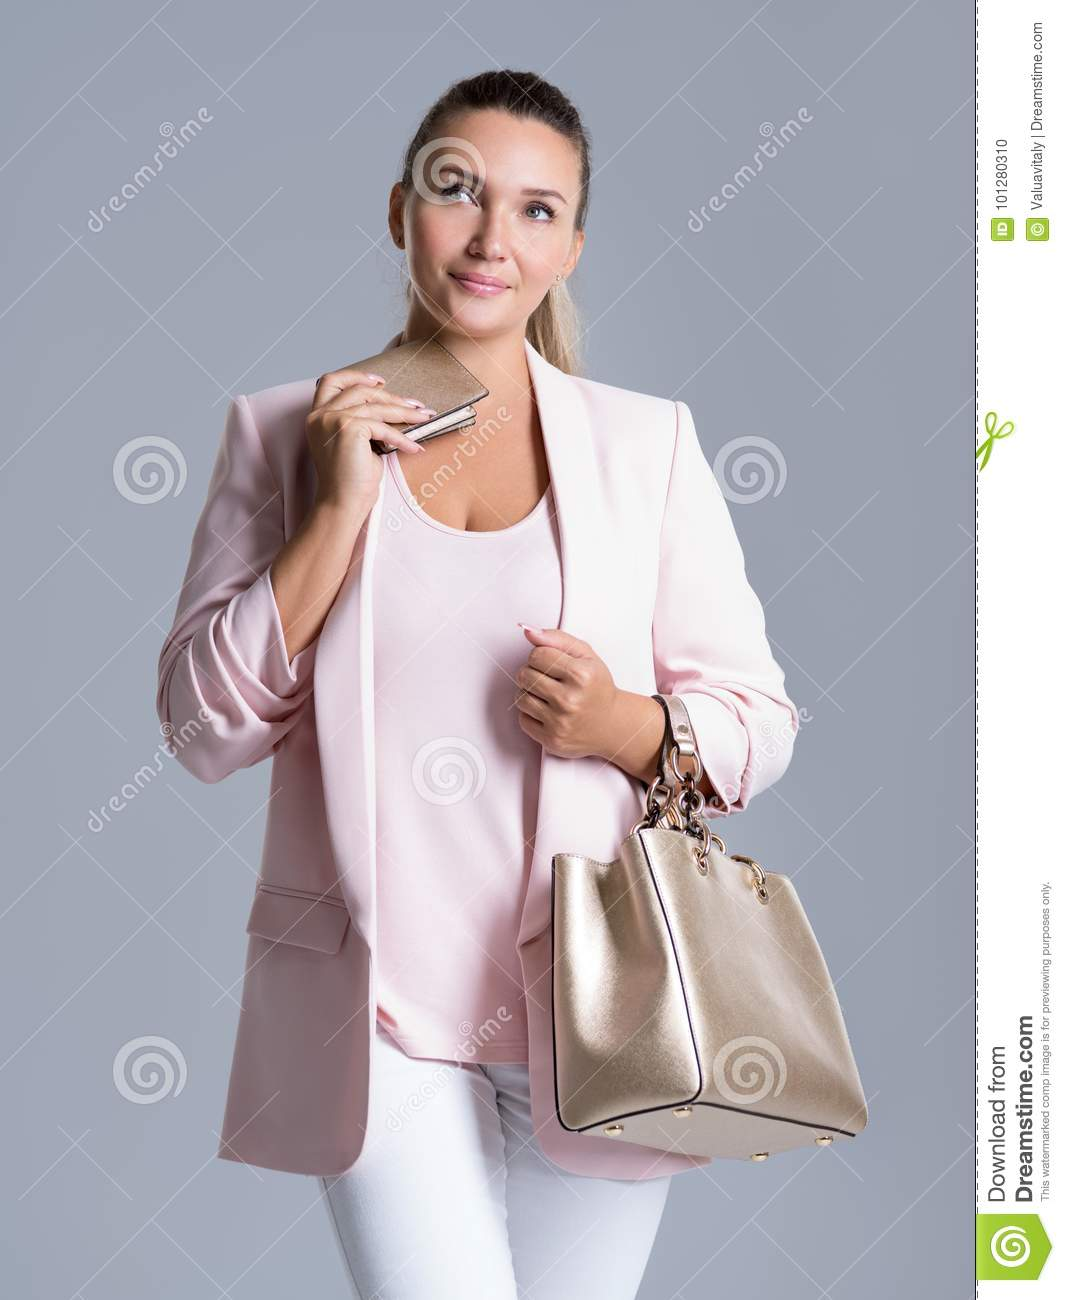 Pensive woman with wallet in hand and a handbag